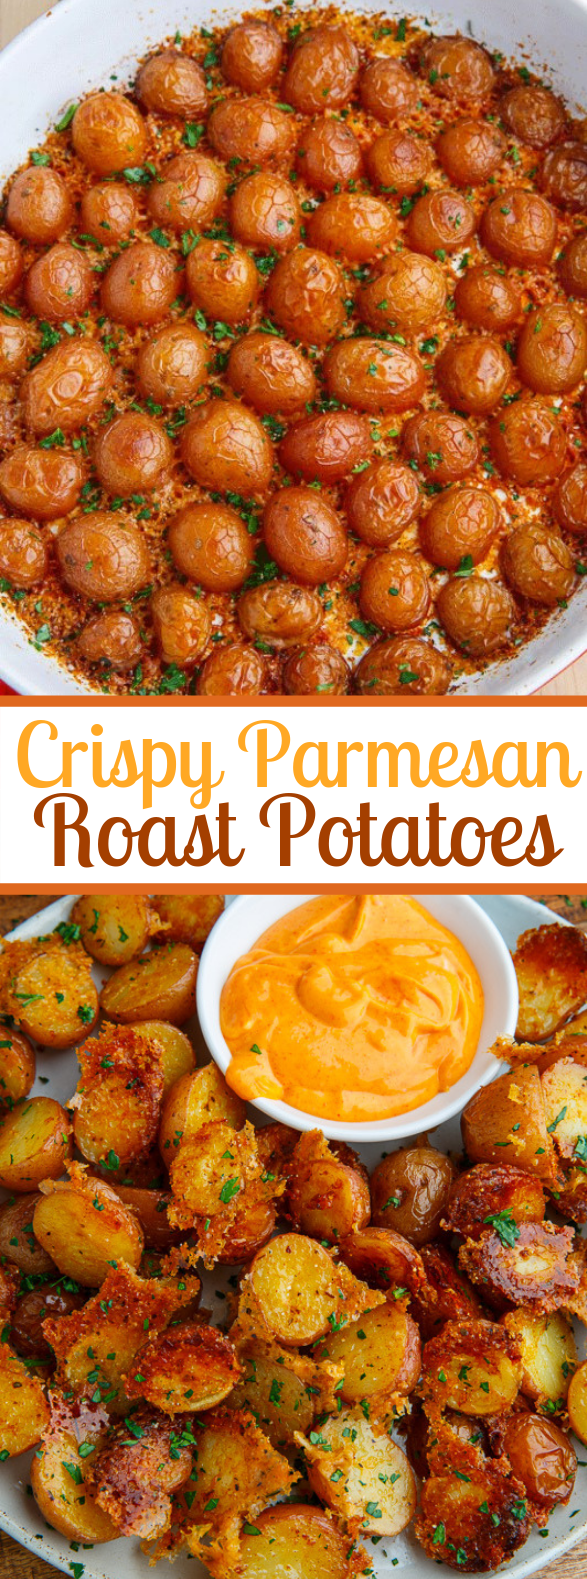 Crispy Parmesan Roast Potatoes #vegetarian #frenchfries